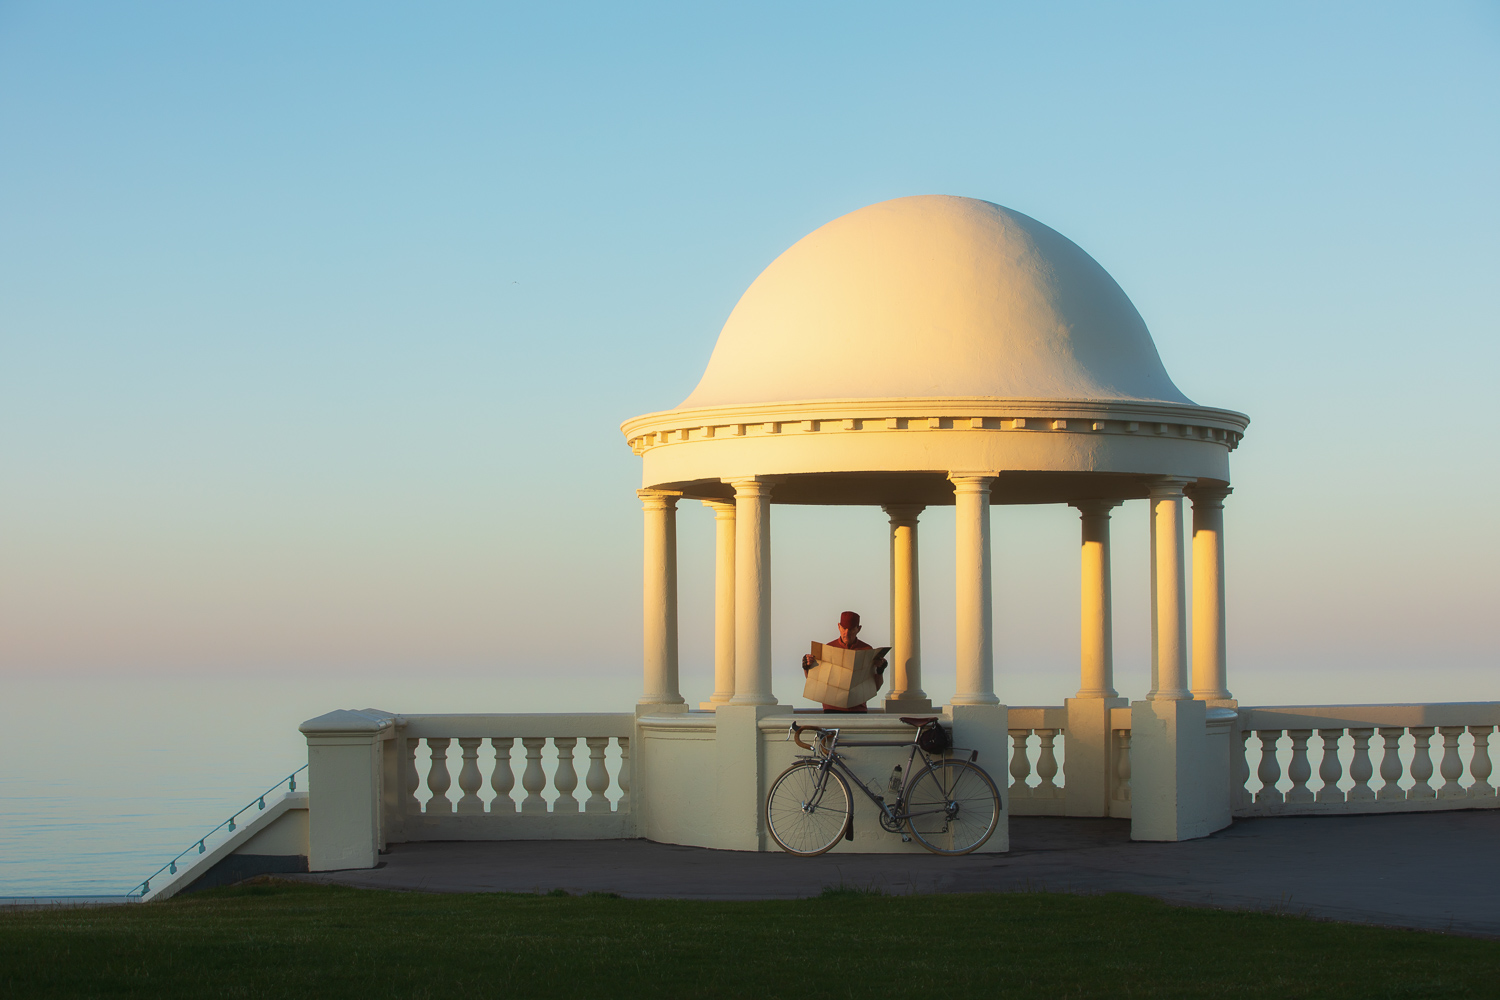 Man with bicycle reading map under classical dome